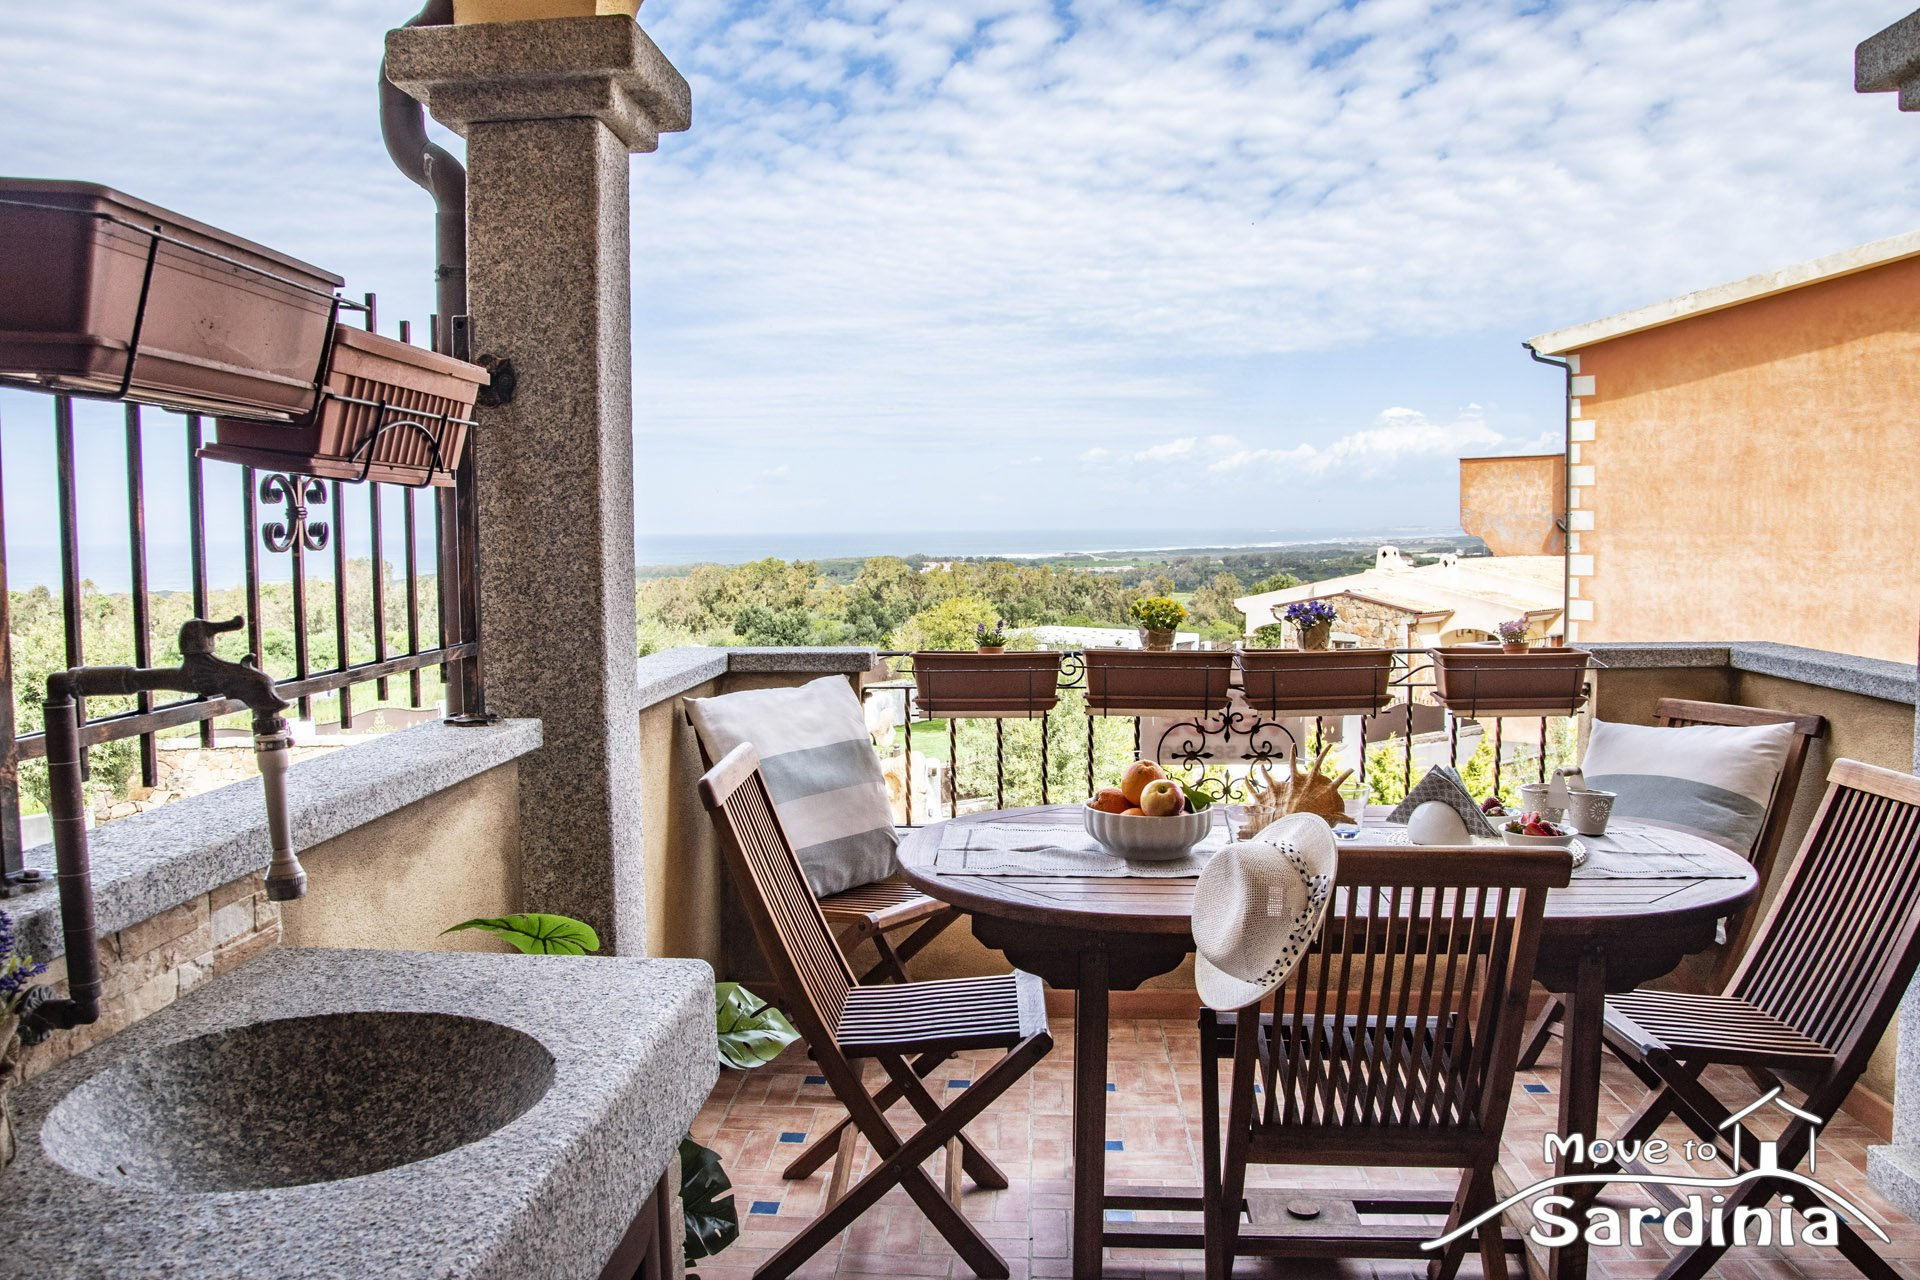 Fabulous apartment for sale in La Muddizza, beautiful sea view, just 2km from the beach